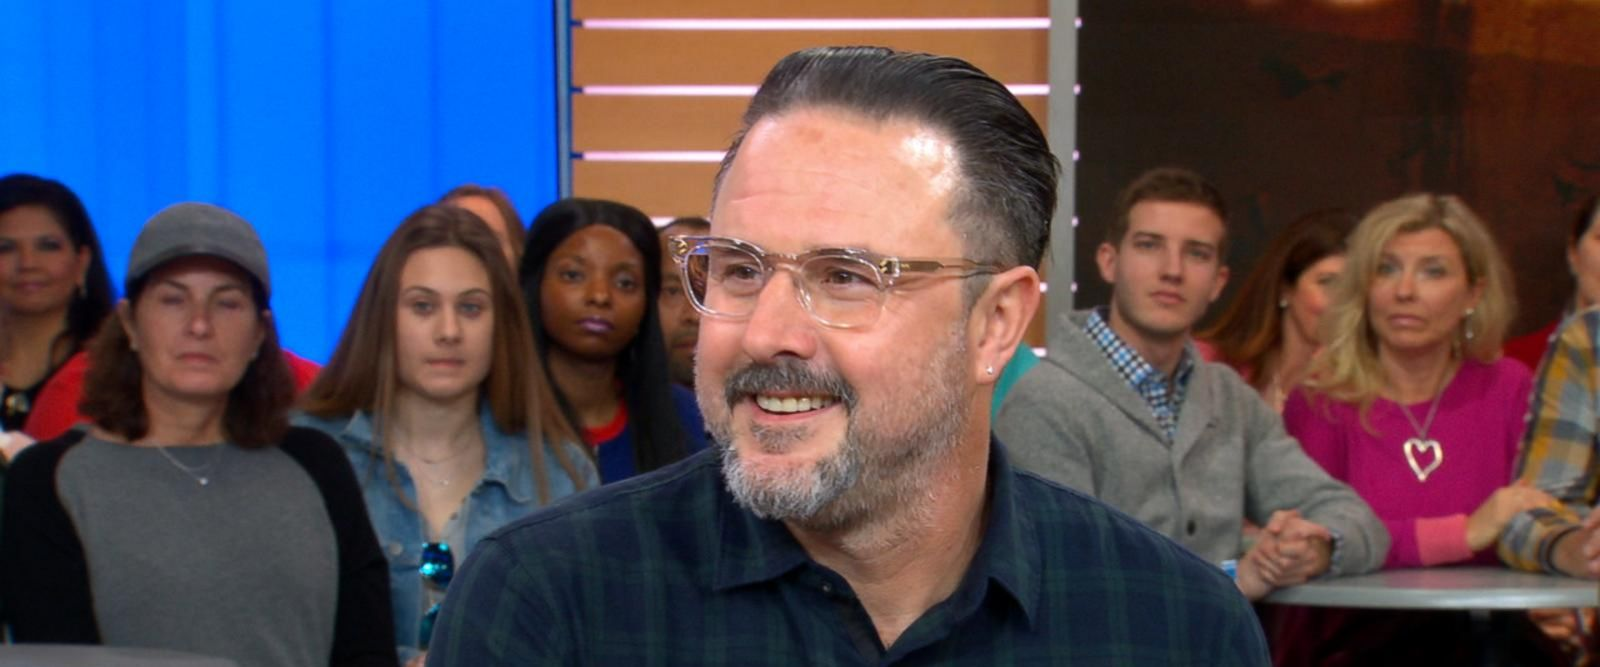 VIDEO: David Arquette opens up about his new documentary 'Survivors Guide to Prison'